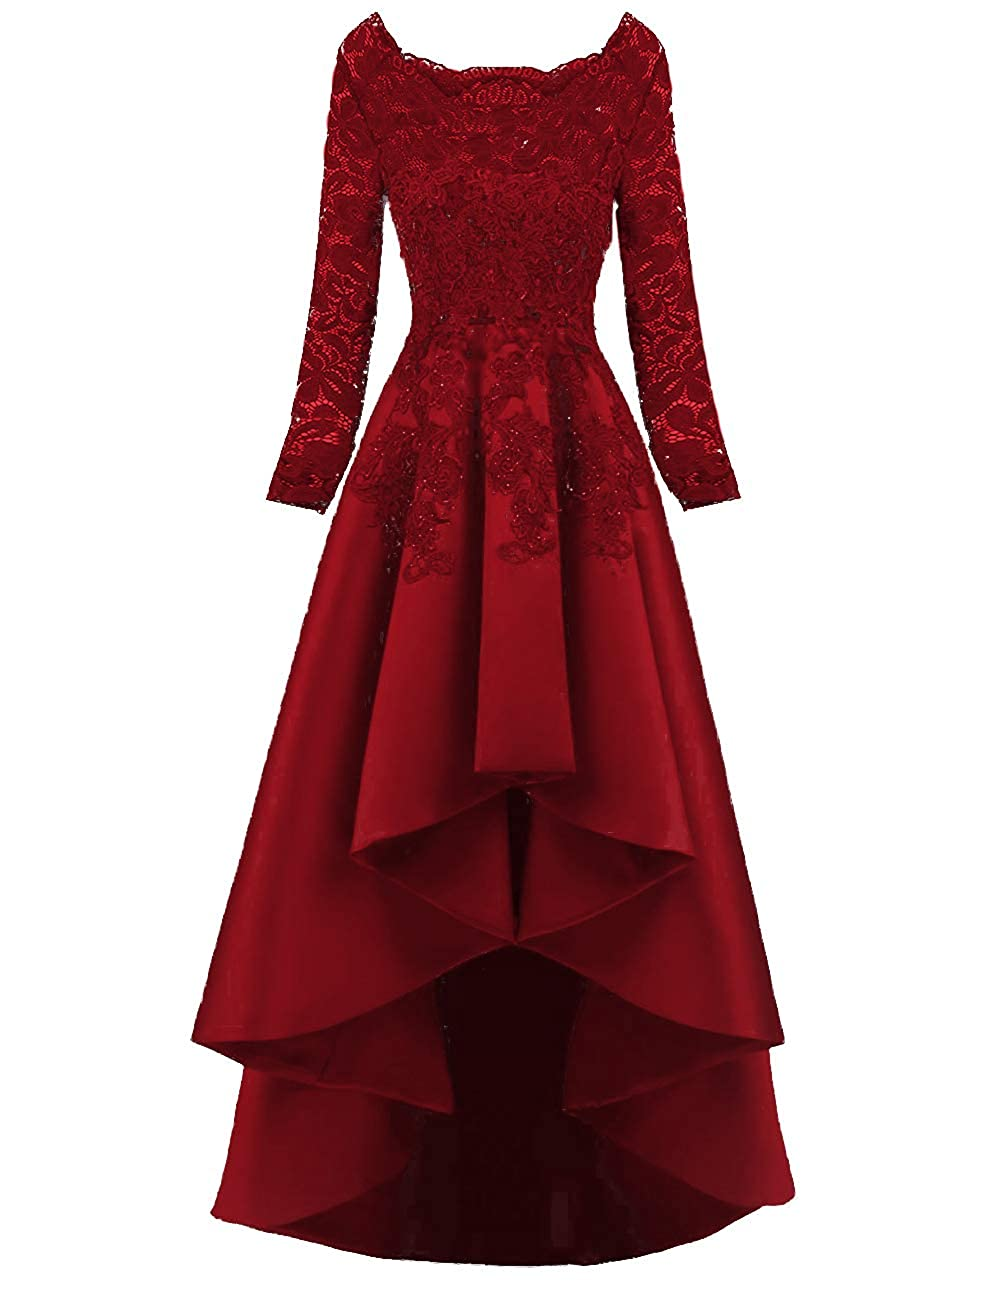 Burgundy PROMNOVAS Long Sleeves Appliques Prom Dresses Ruffles Evening Party Dresses